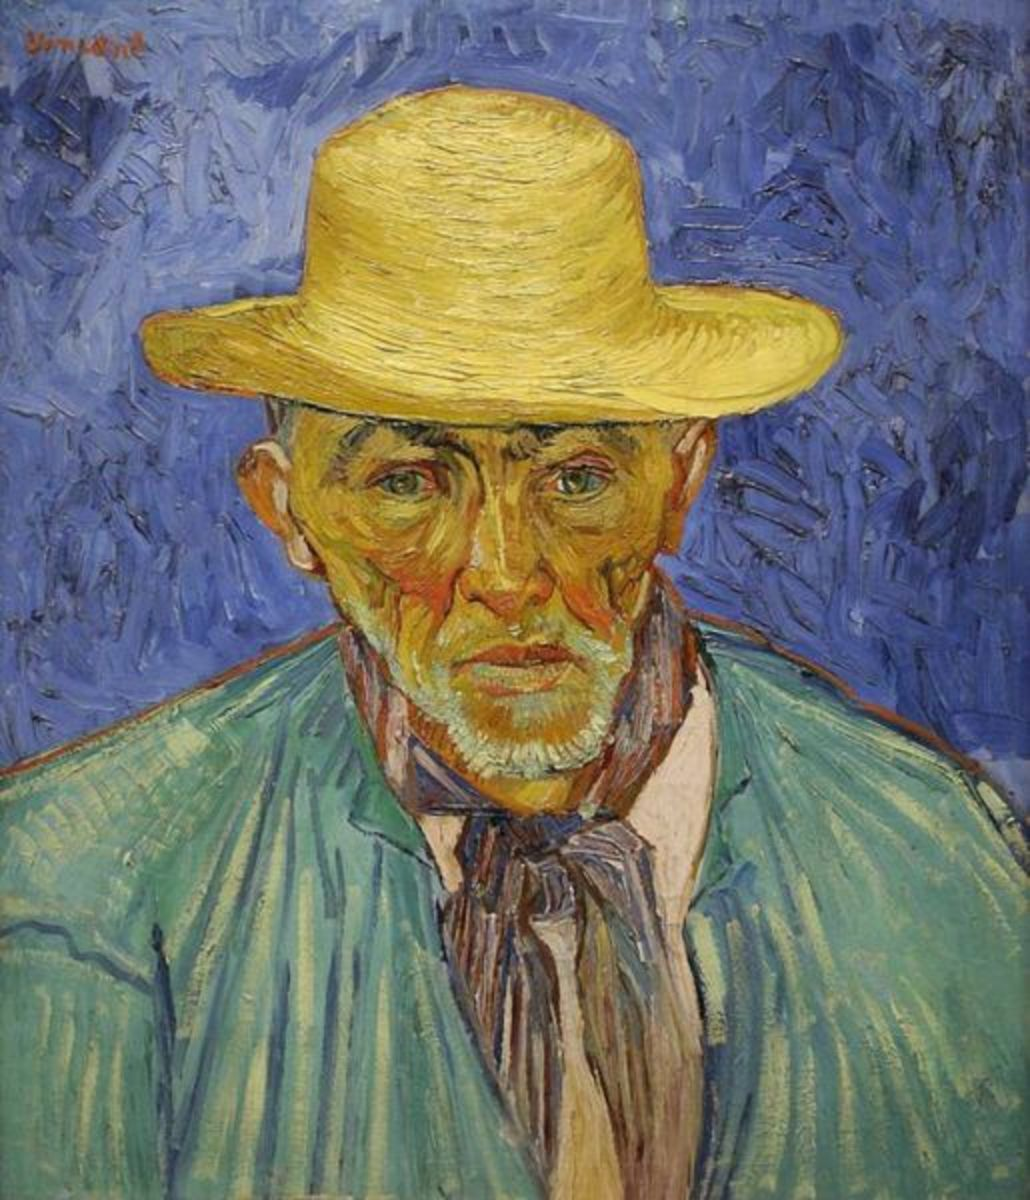 You don't even have to cut off an ear or go to Amsterdam to experience the world of Van Gogh Pasadena will take you there